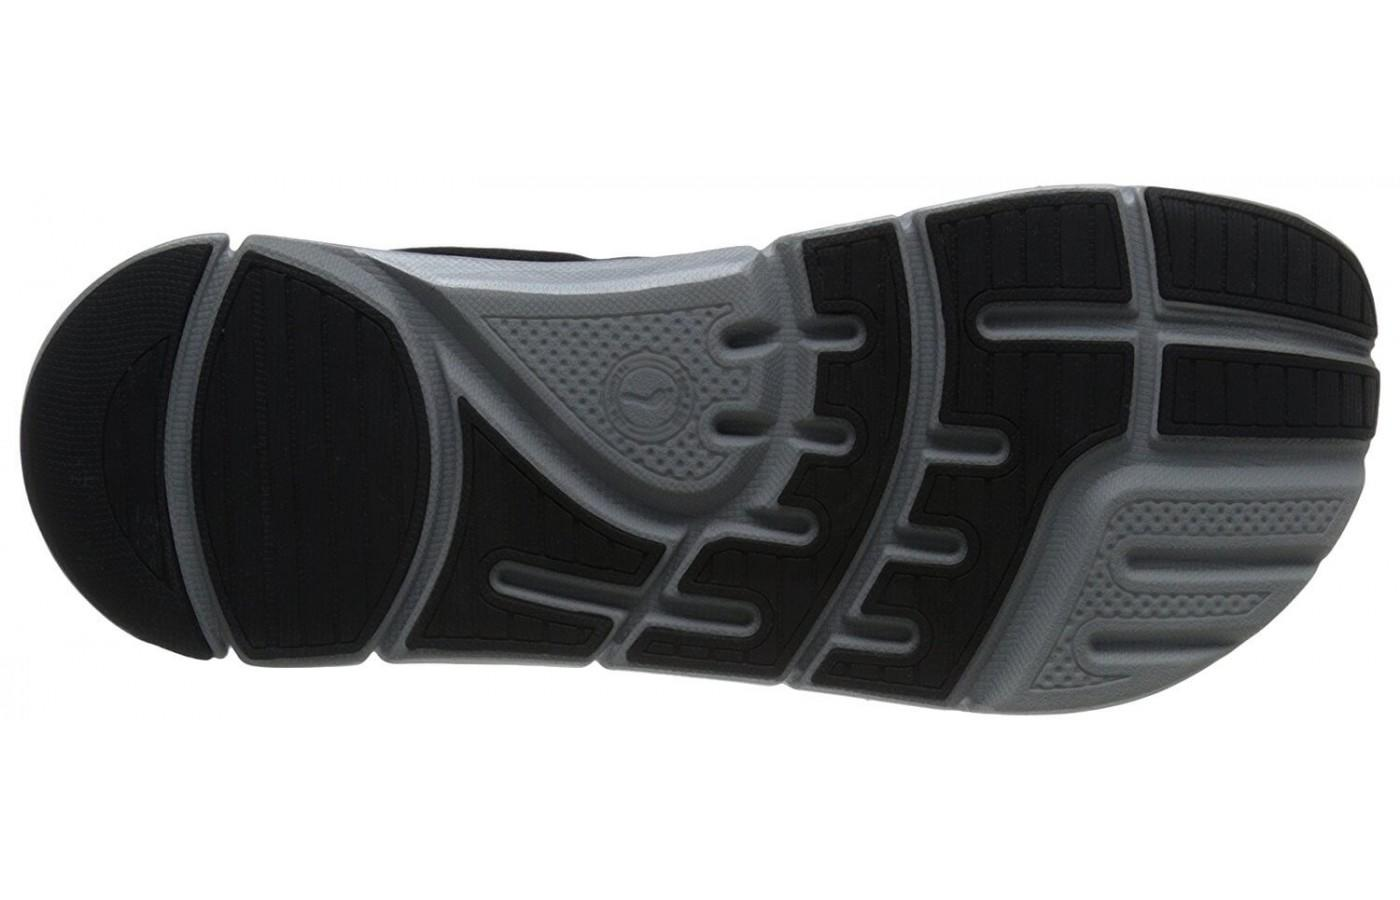 The outsole of the Altra Instinct 3.5 provides good traction on smooth surfaces